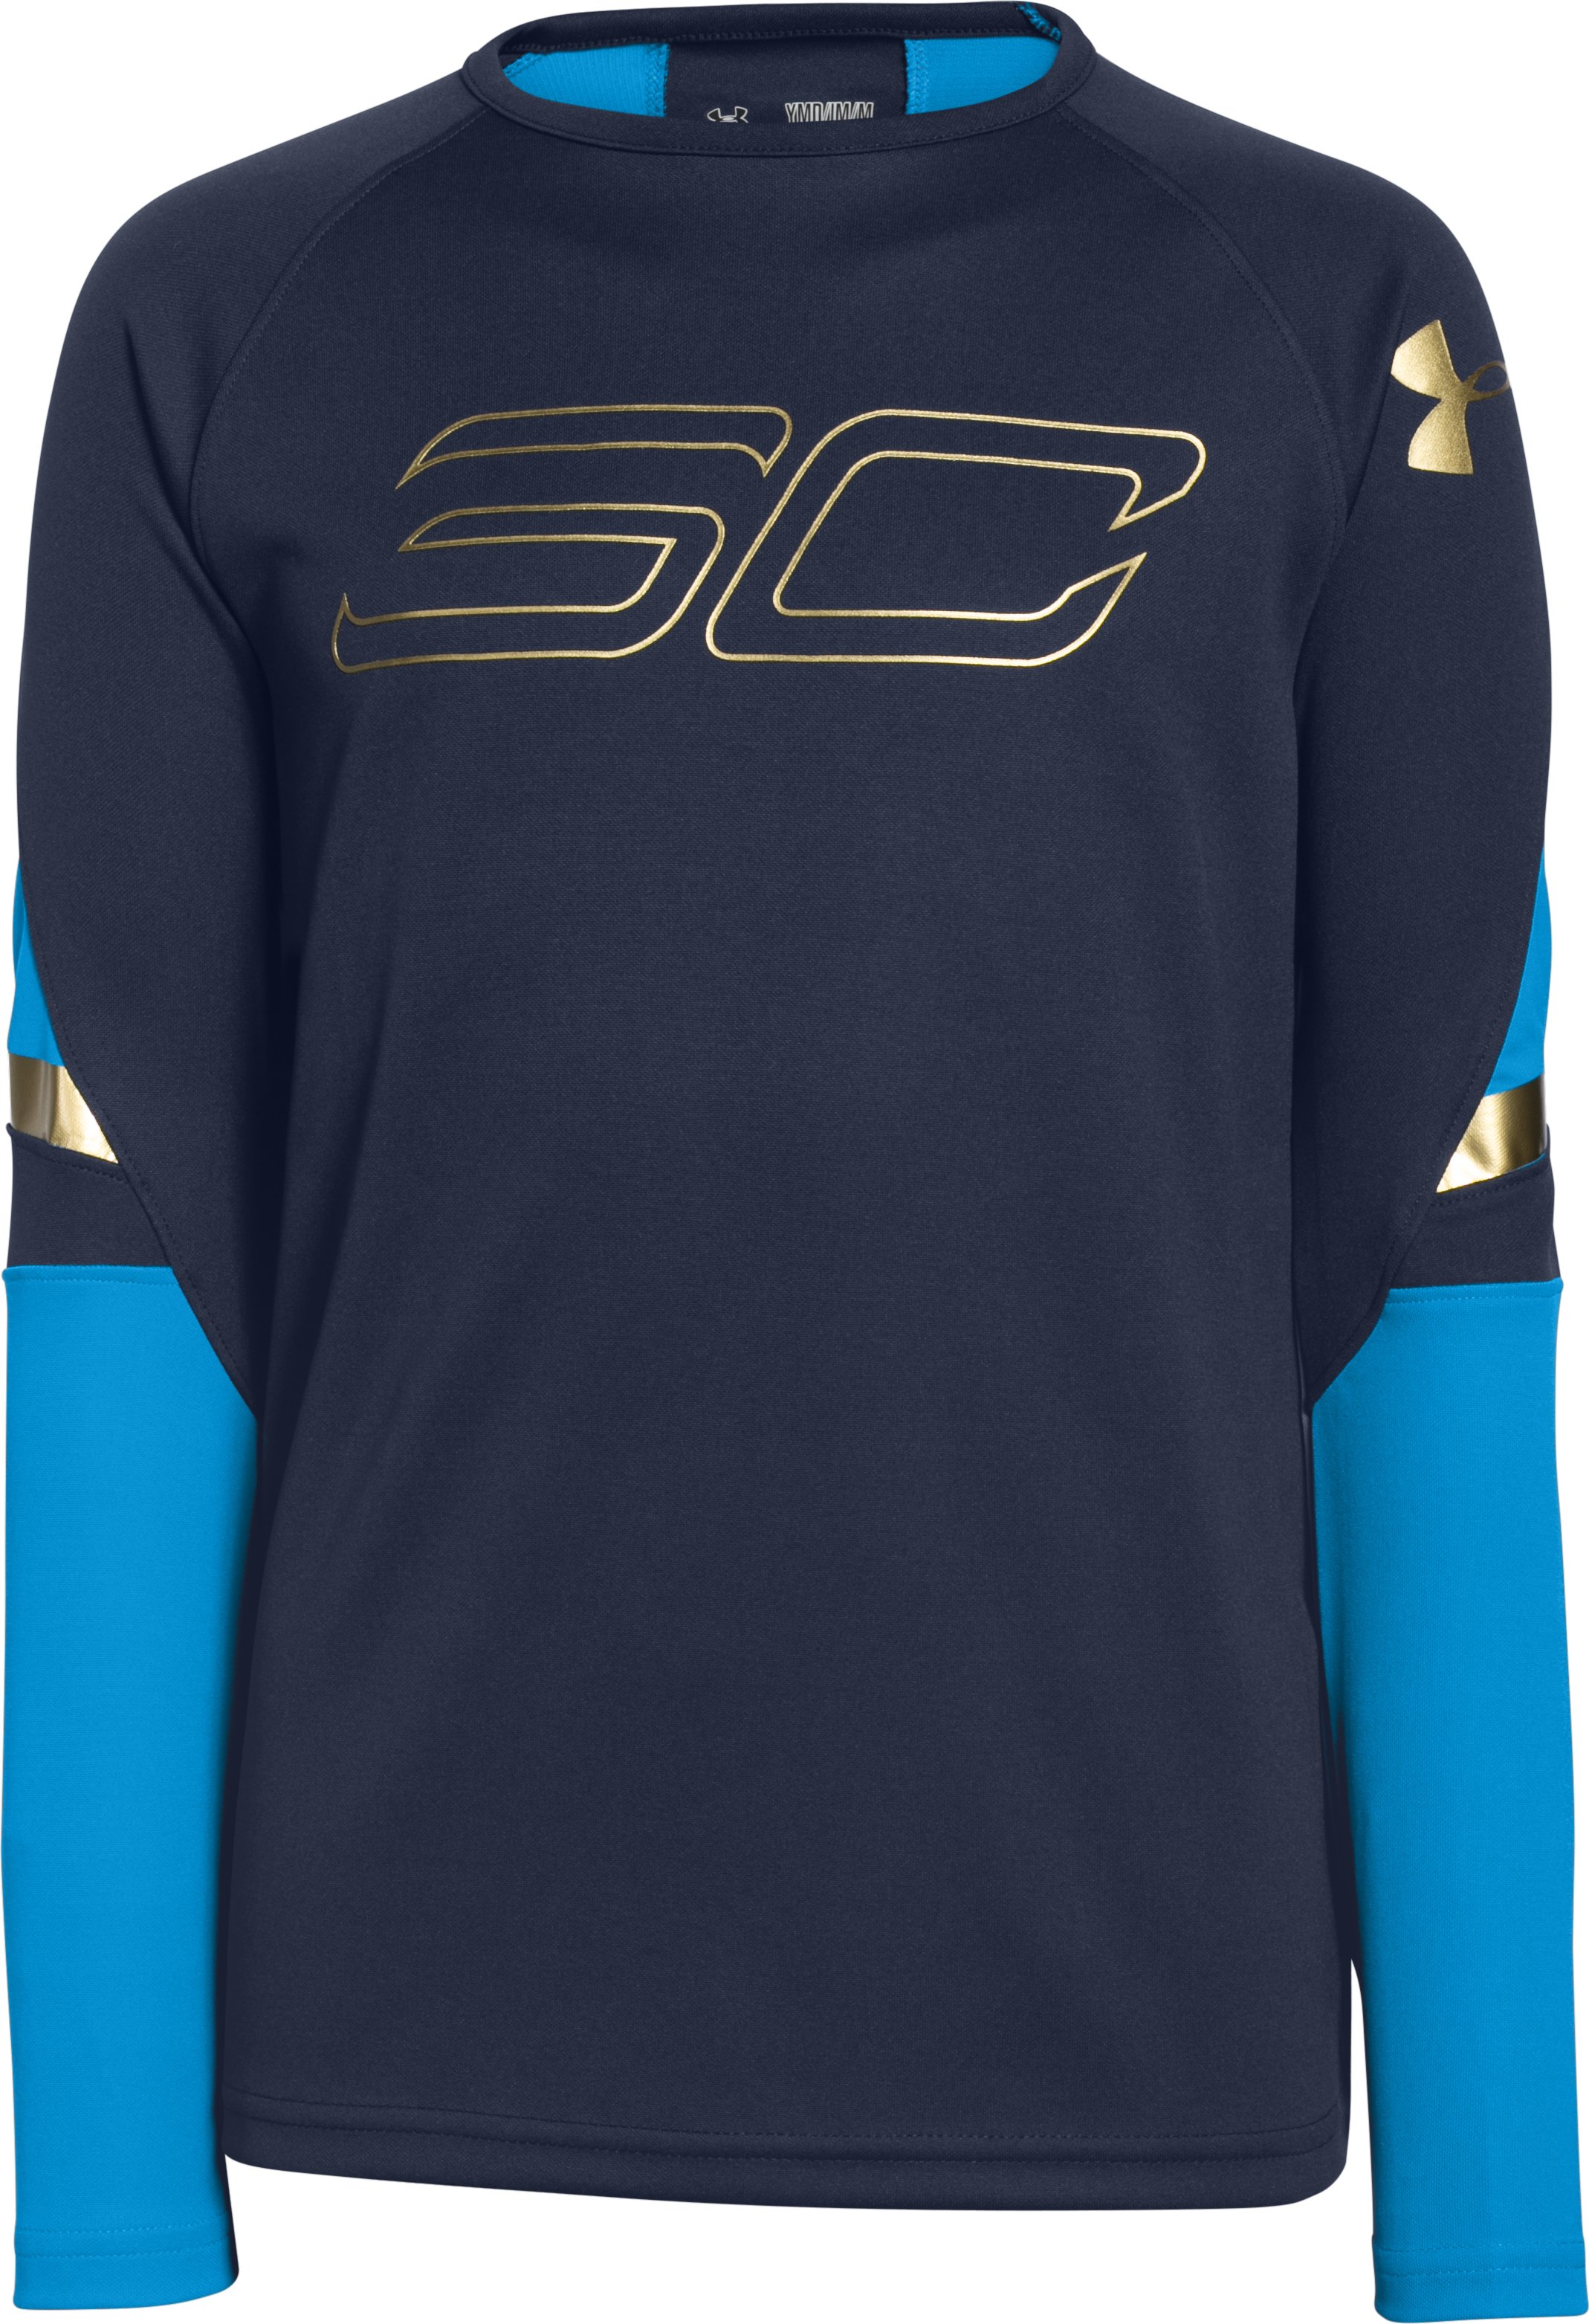 Boys' SC30 Heatseeker Shooting Shirt, Midnight Navy,